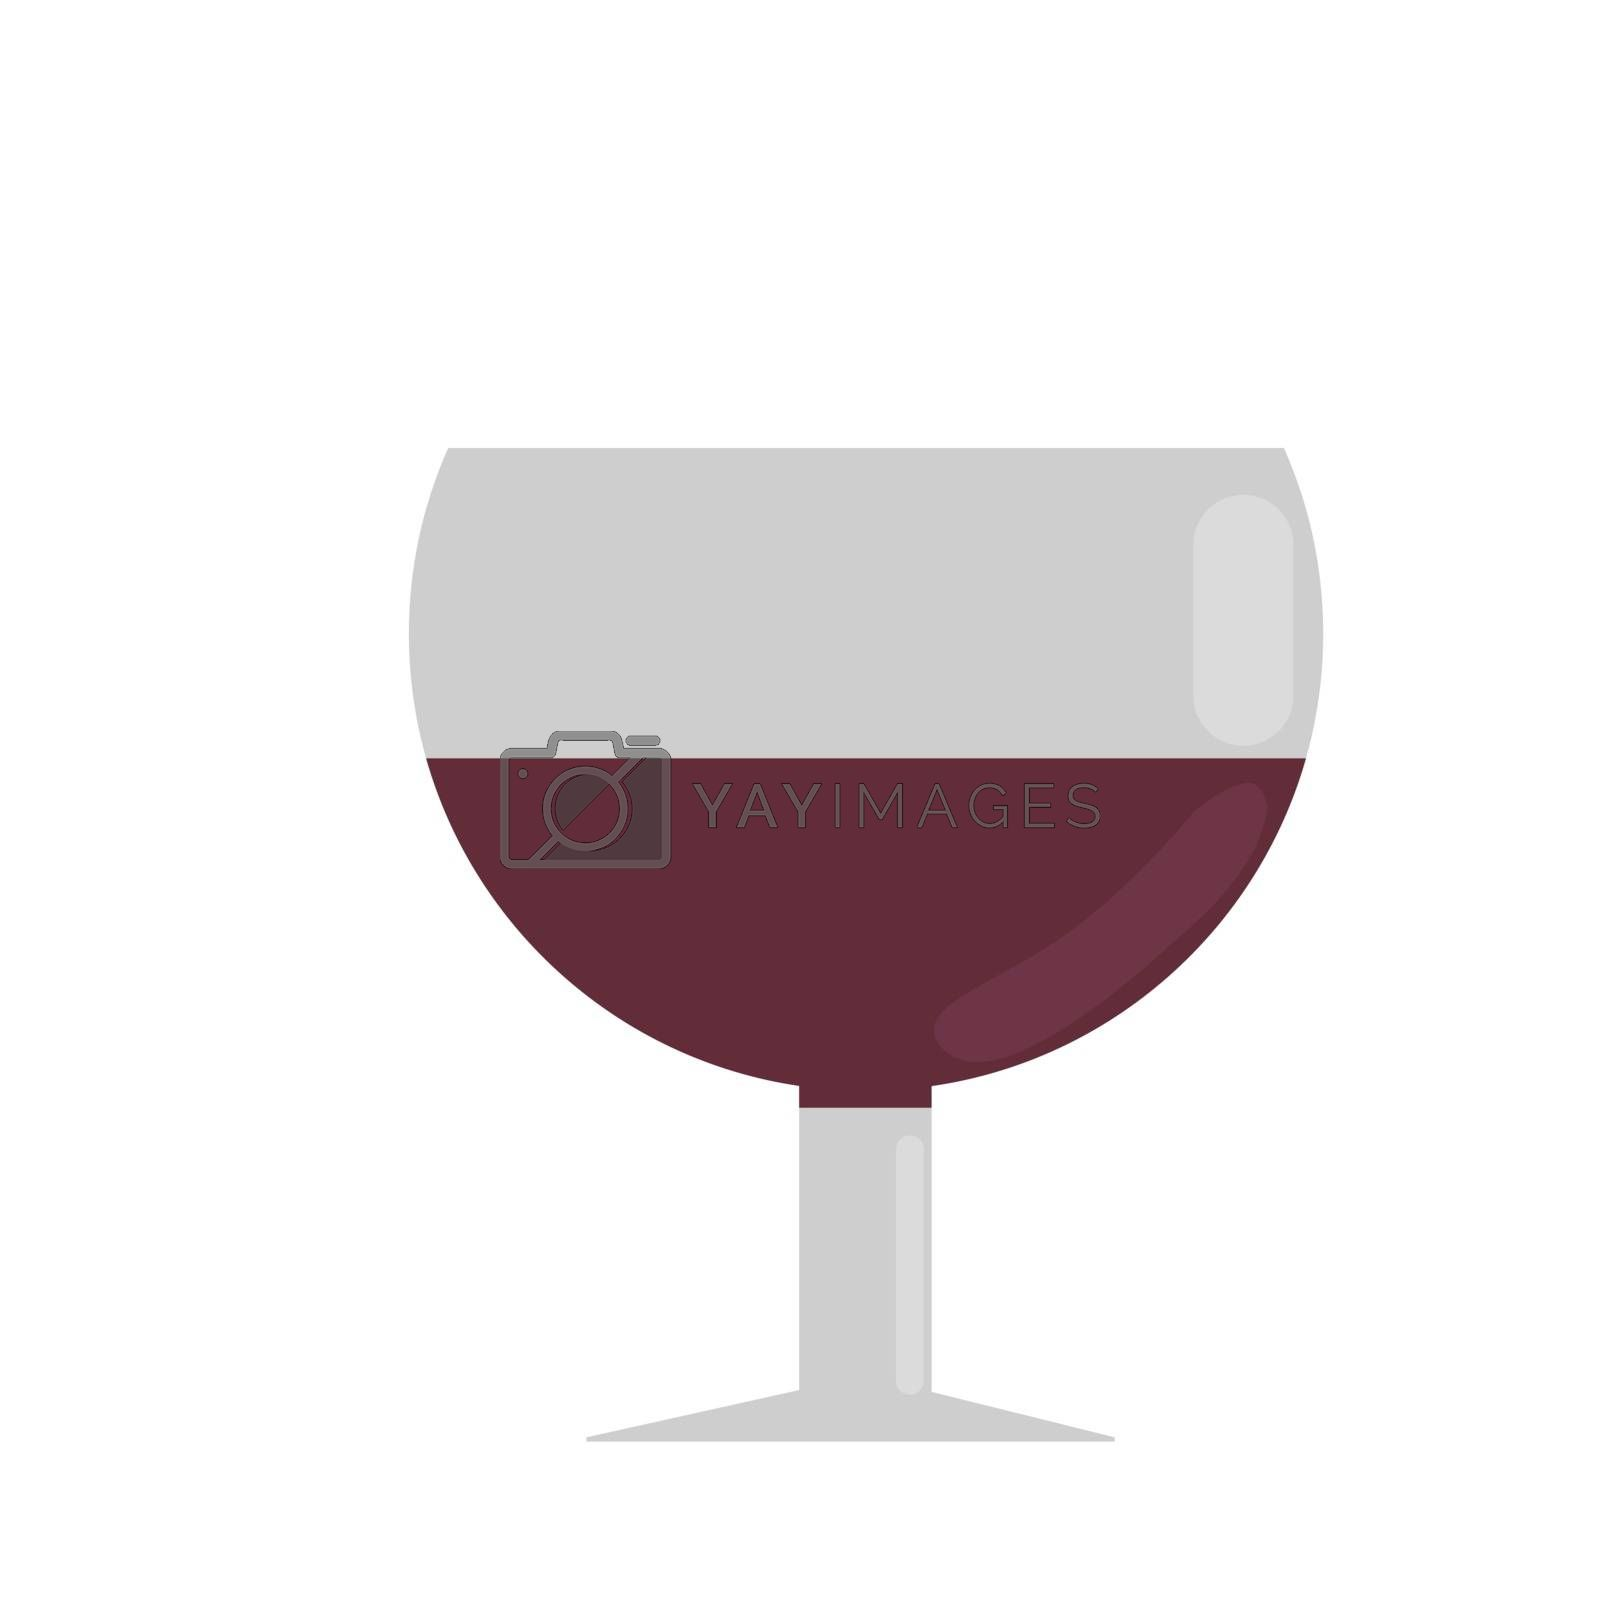 a glass of red wine. vector illustration in flat style.